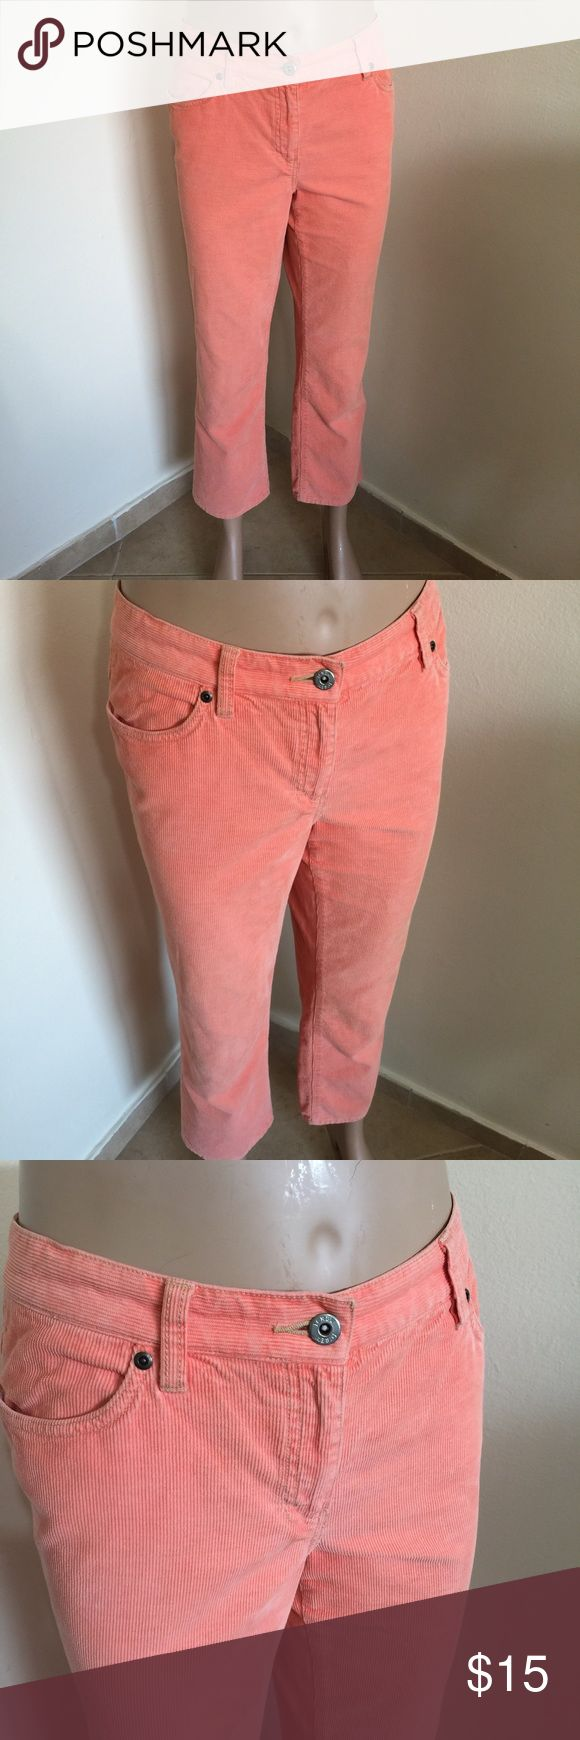 """J.Crew Tangerine Ankle Crop Corduroy Jeans 10 L26 Label-J. Crew Women's Jeans Style- """"Low Fit"""" Ankle Crop, straight leg,medium wale Corduroy Jeans. These are cut like a boyfriend lowride crop.  Size-10 Shown on a 4 Mannequin and way to big so pics don't look very good. But really nice pants.  Measurements-W-35, Hip-44 Inseam-26 Rise-9.5 Leg Opening-8 Color-Light Pastel Tangerine Orange Fabric-100% Cotton Condition-Gently Worn, no issues Origin-China J. Crew Jeans Ankle & Cropped"""